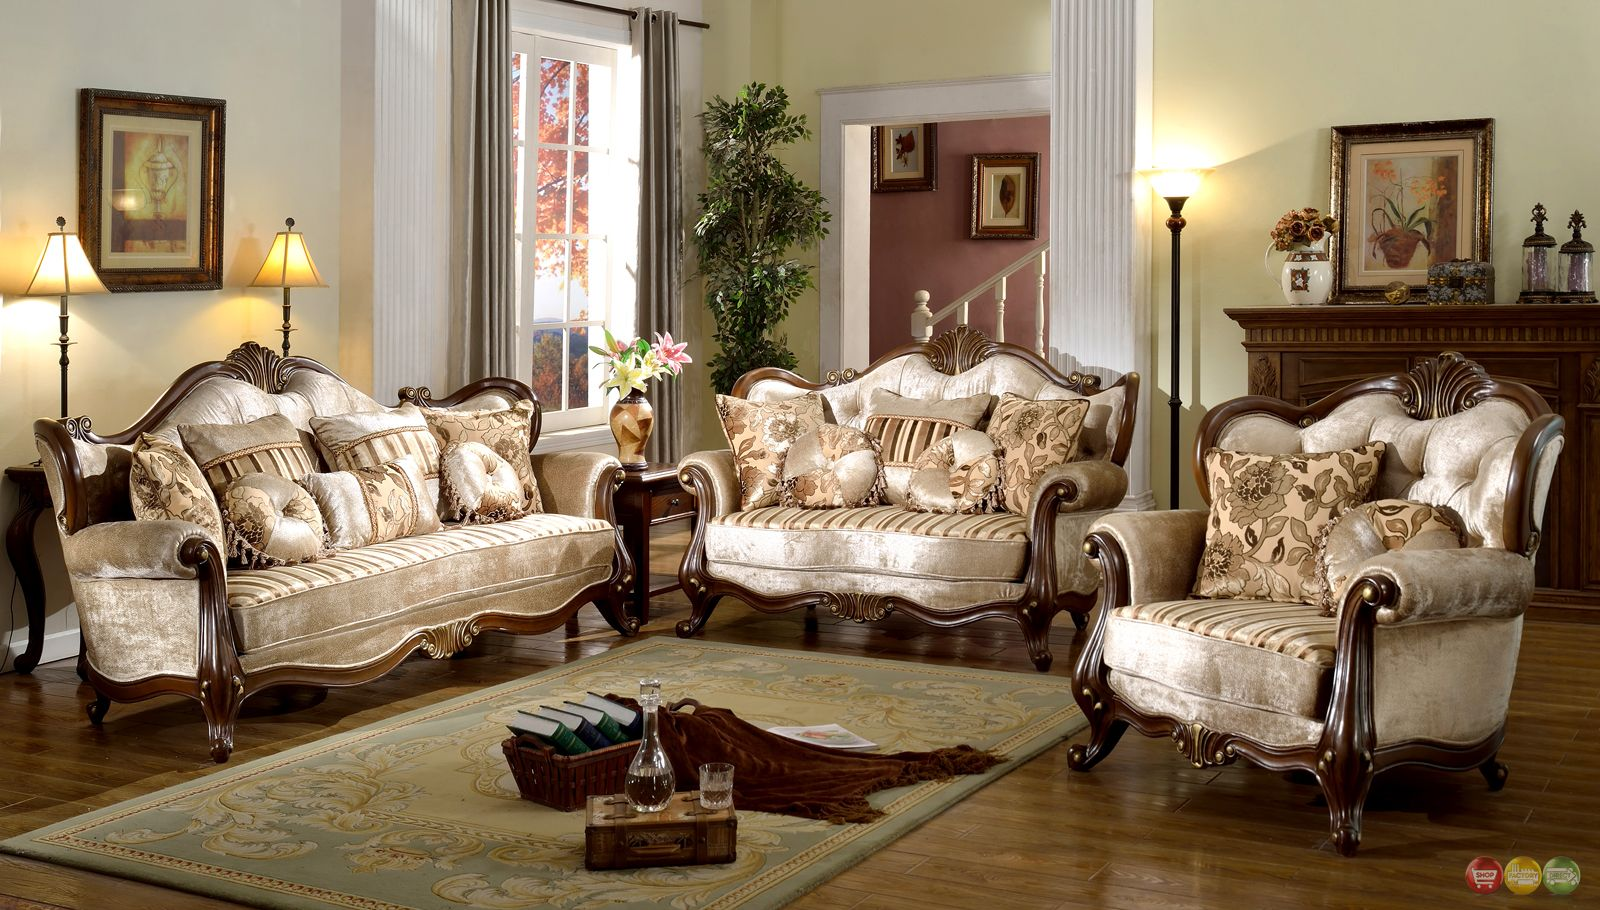 French Provincial Formal Antique Style Living Room Furniture Set Beige  Chenille shopfactorydirect com